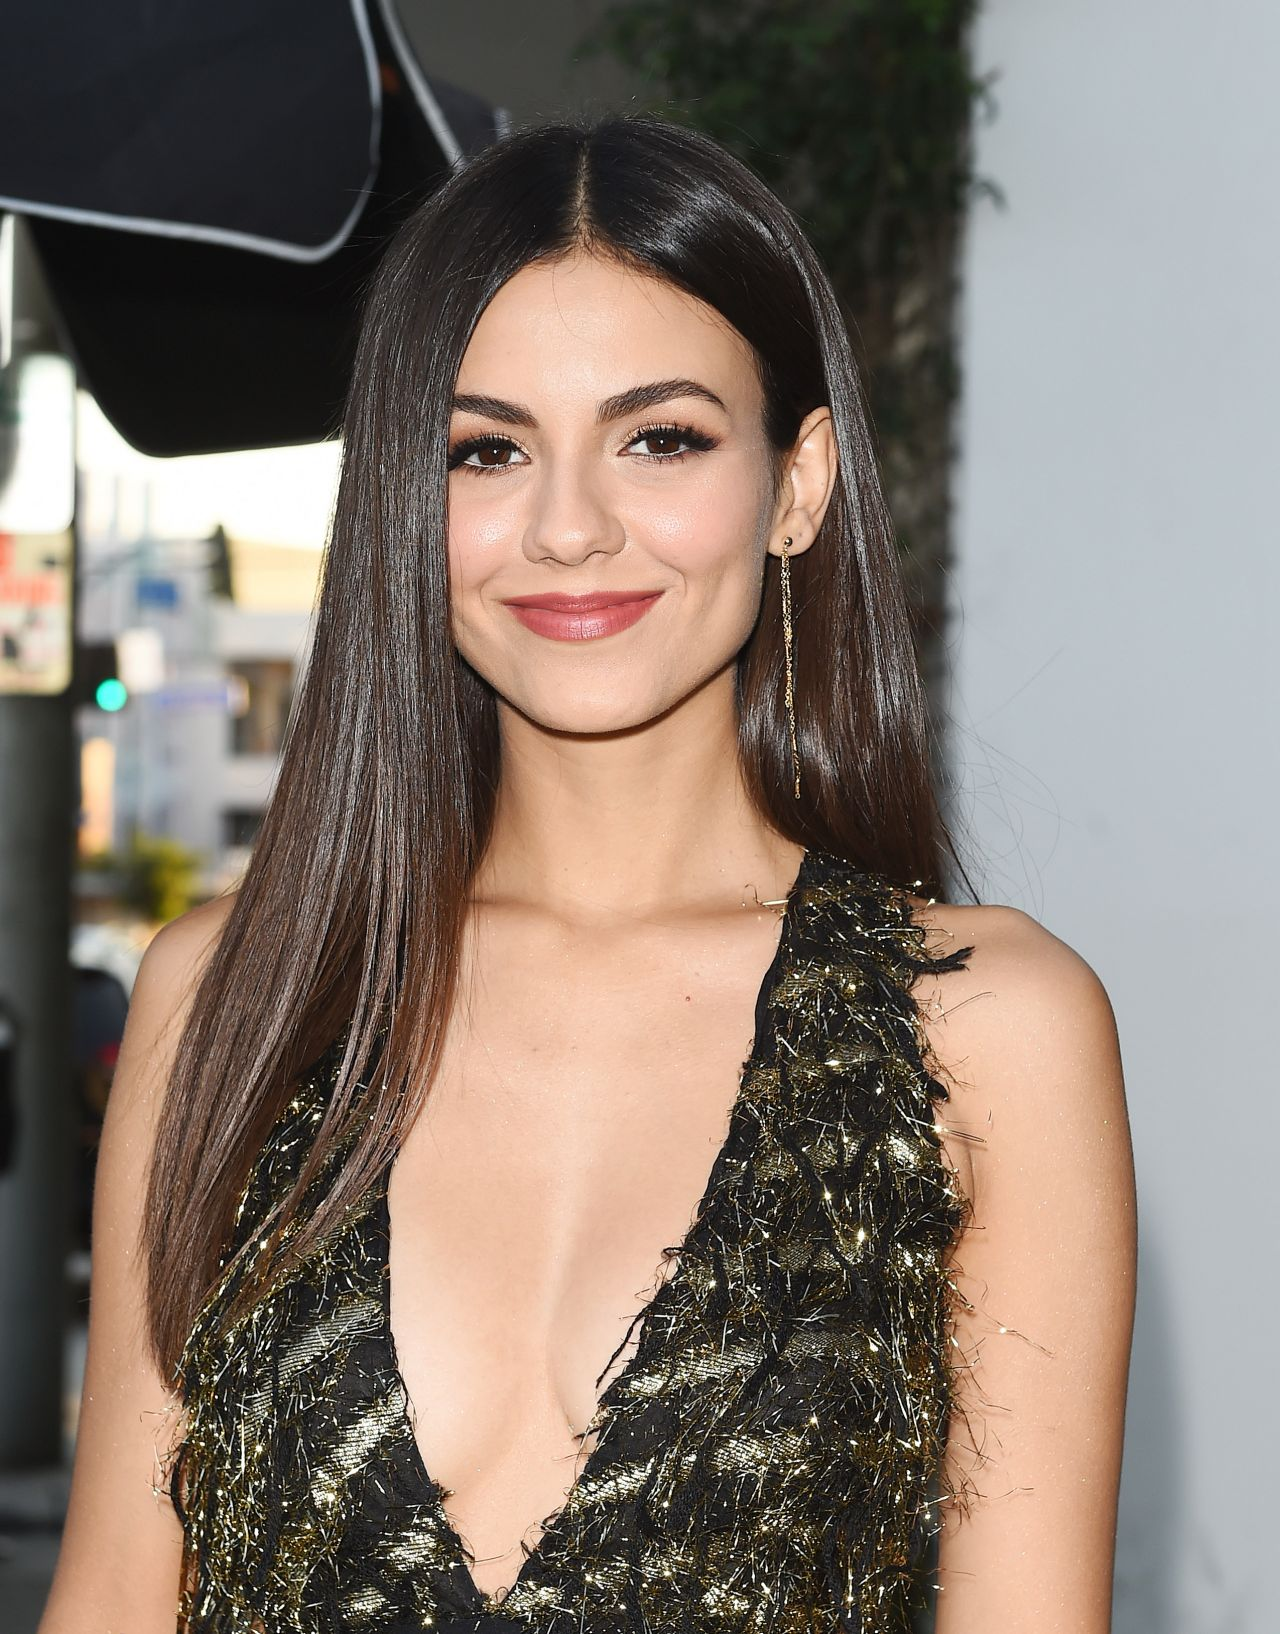 Fotos Victoria Justice nudes (12 foto and video), Sexy, Leaked, Instagram, butt 2018